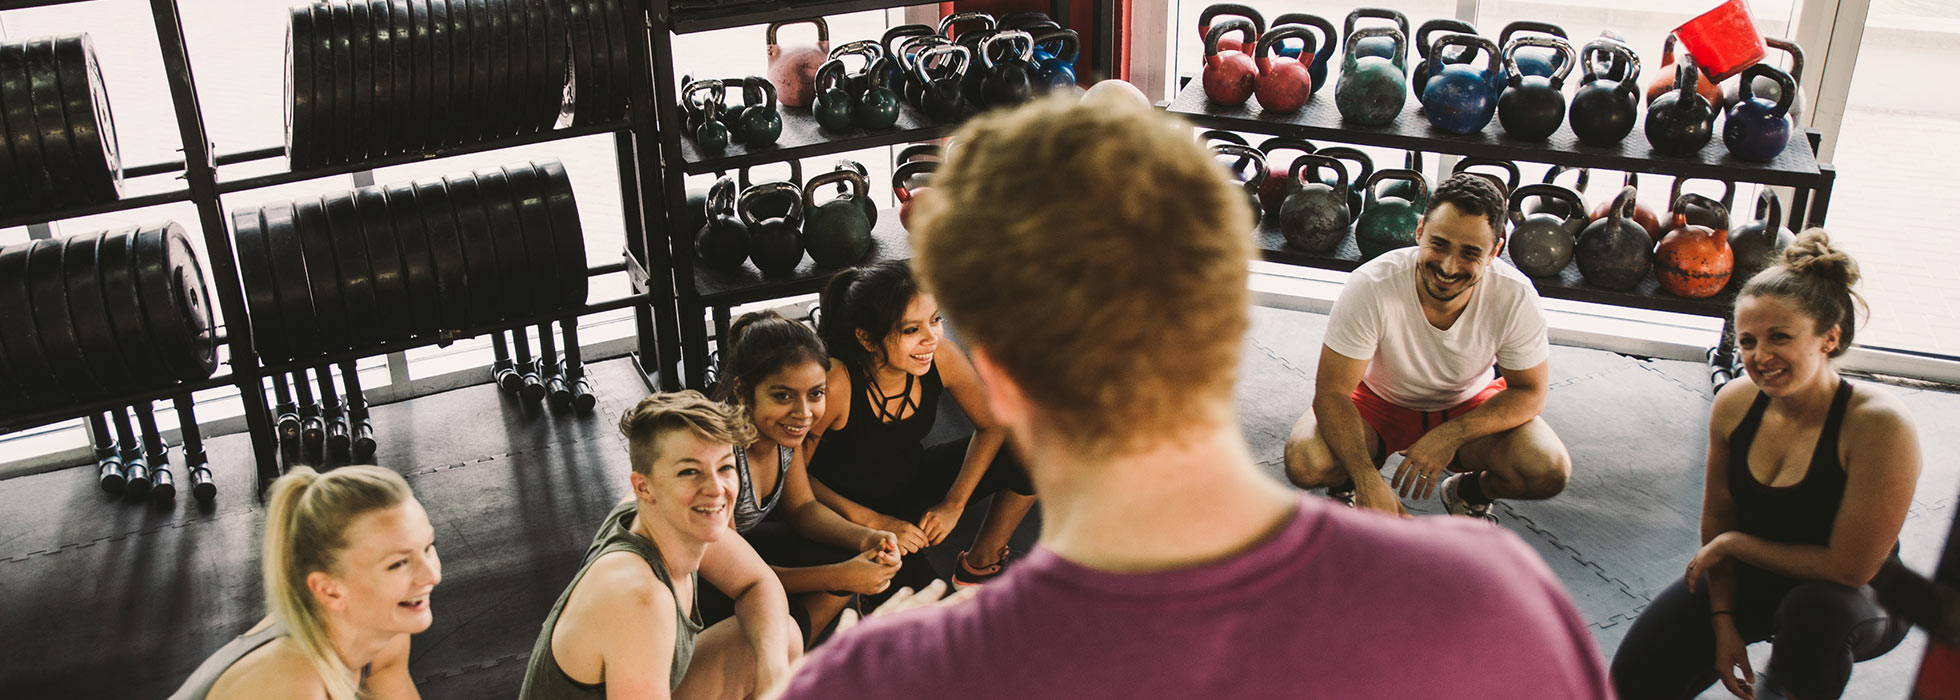 Top 5 Best Gyms to Join Near Sugar Land